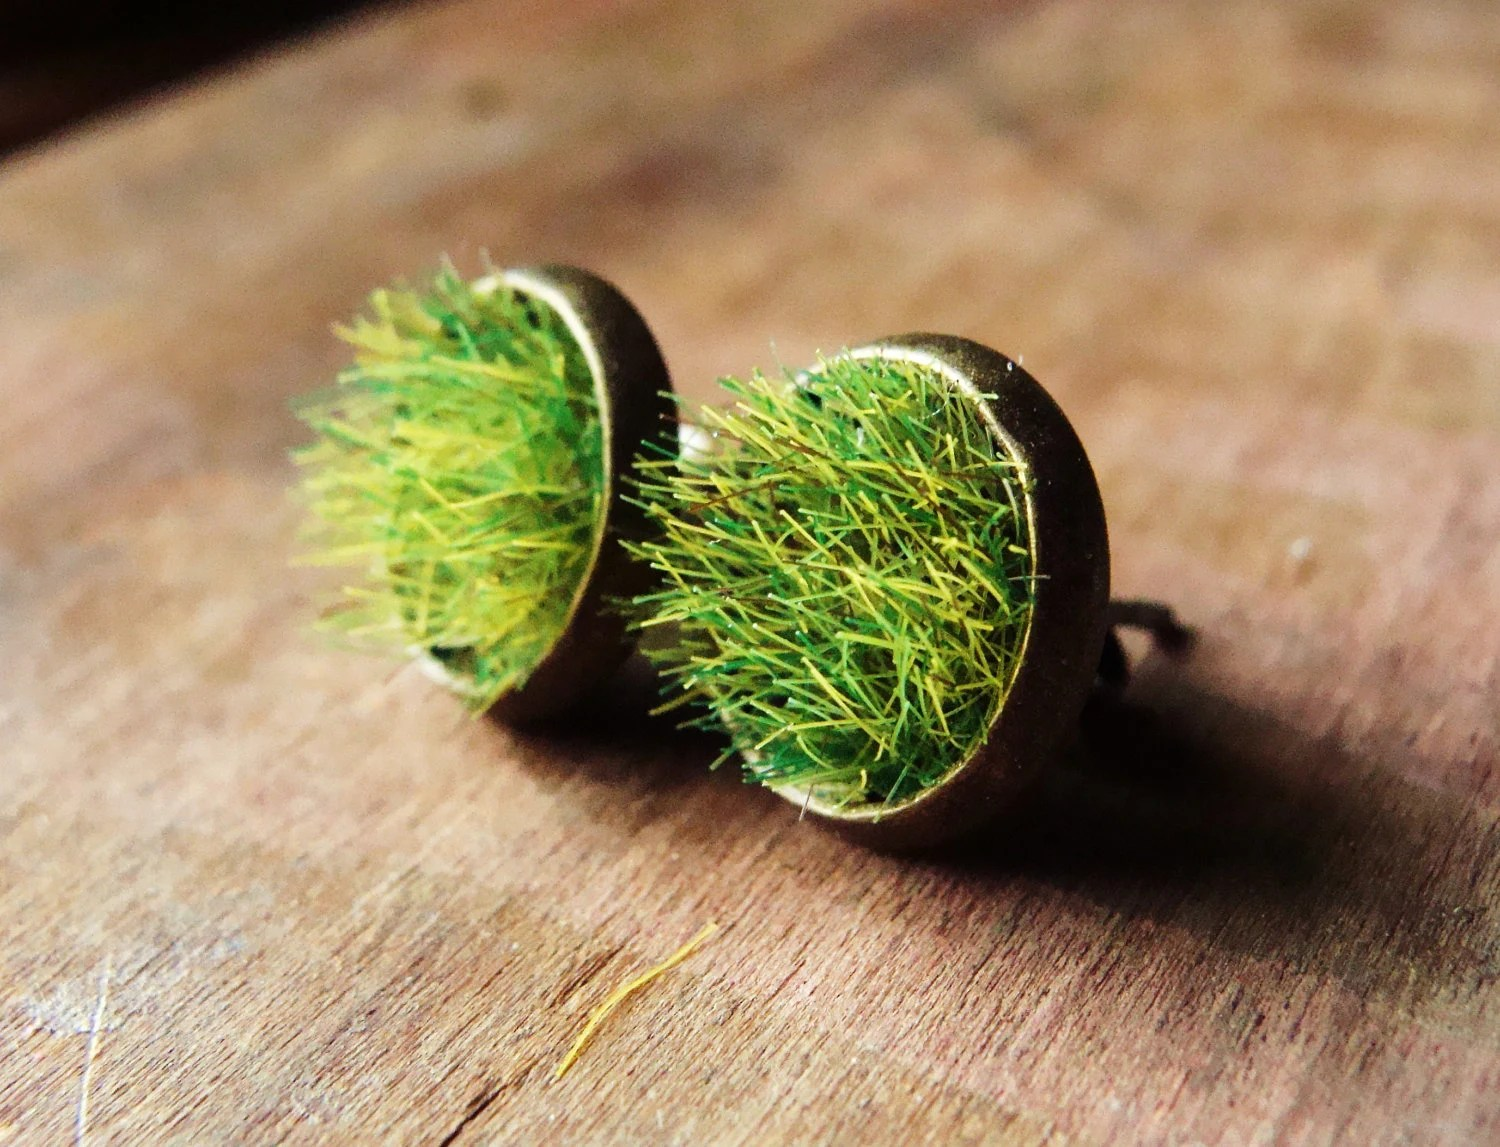 Green Grass Stud Earrings in Tarnished Bronze Round Bezels - aptoArt